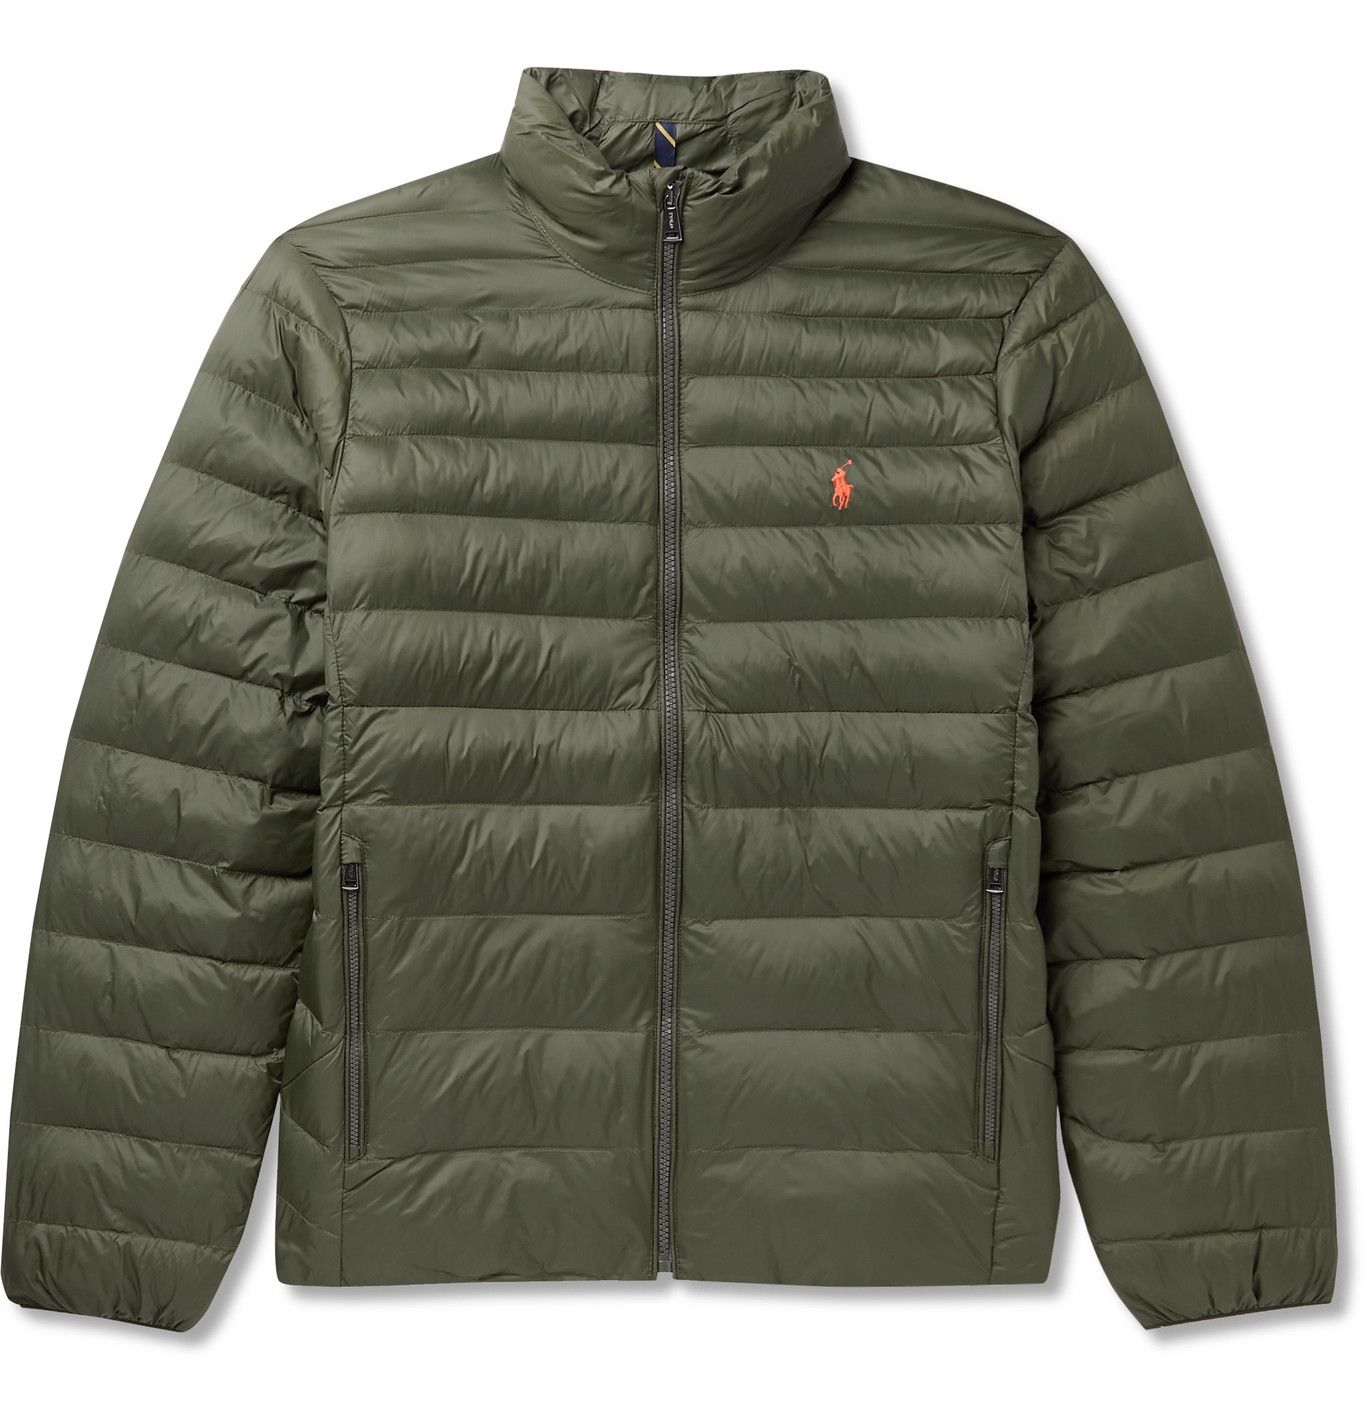 Polo Ralph Lauren Quilted Recycled Shell Jacket Men Green Polo Ralph Lauren Mens Jackets Ralph Lauren [ 1426 x 1365 Pixel ]